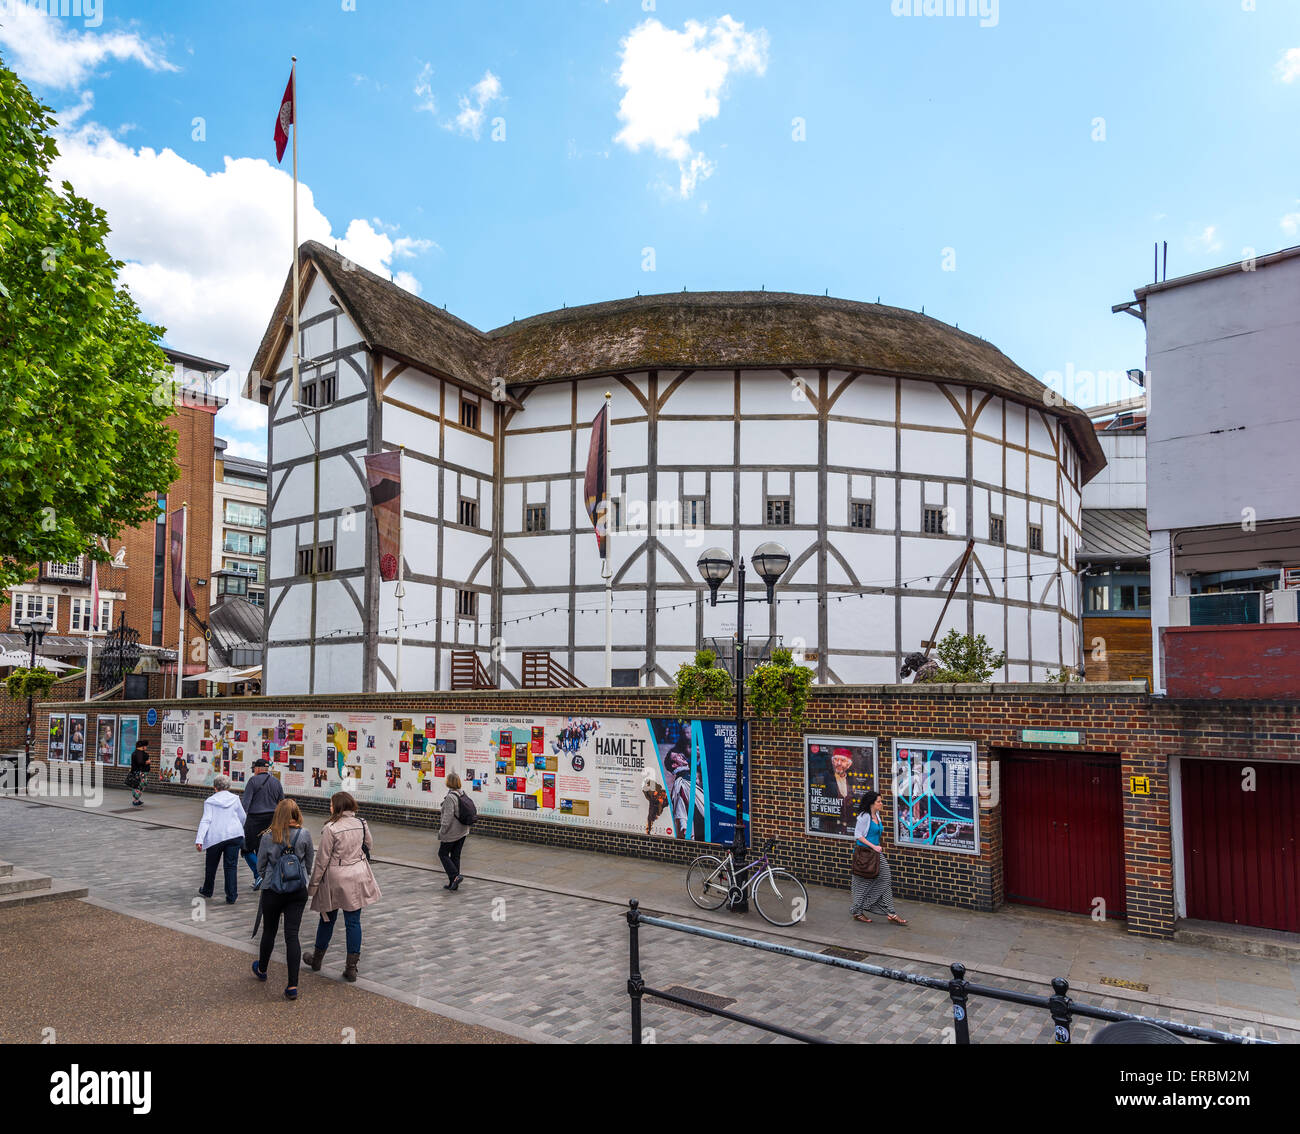 Shakespeare's Globe, a modern reconstruction of the Globe Theatre an Elizabethan Playhouse. Located in Southwark, - Stock Image